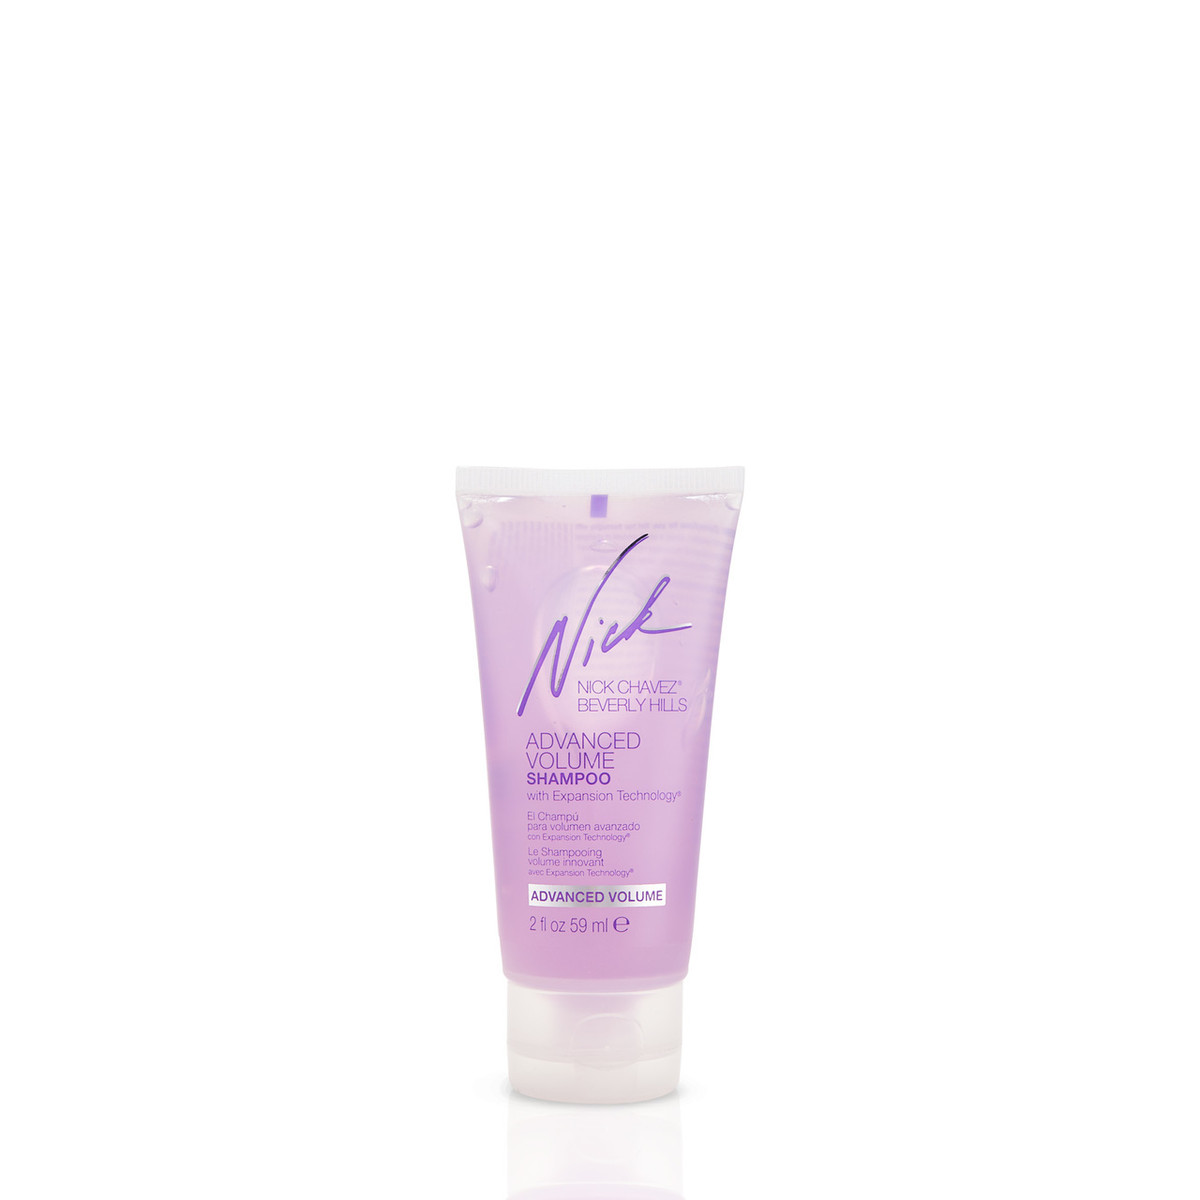 2oz Advanced Volume Shampoo with Expansion Technology